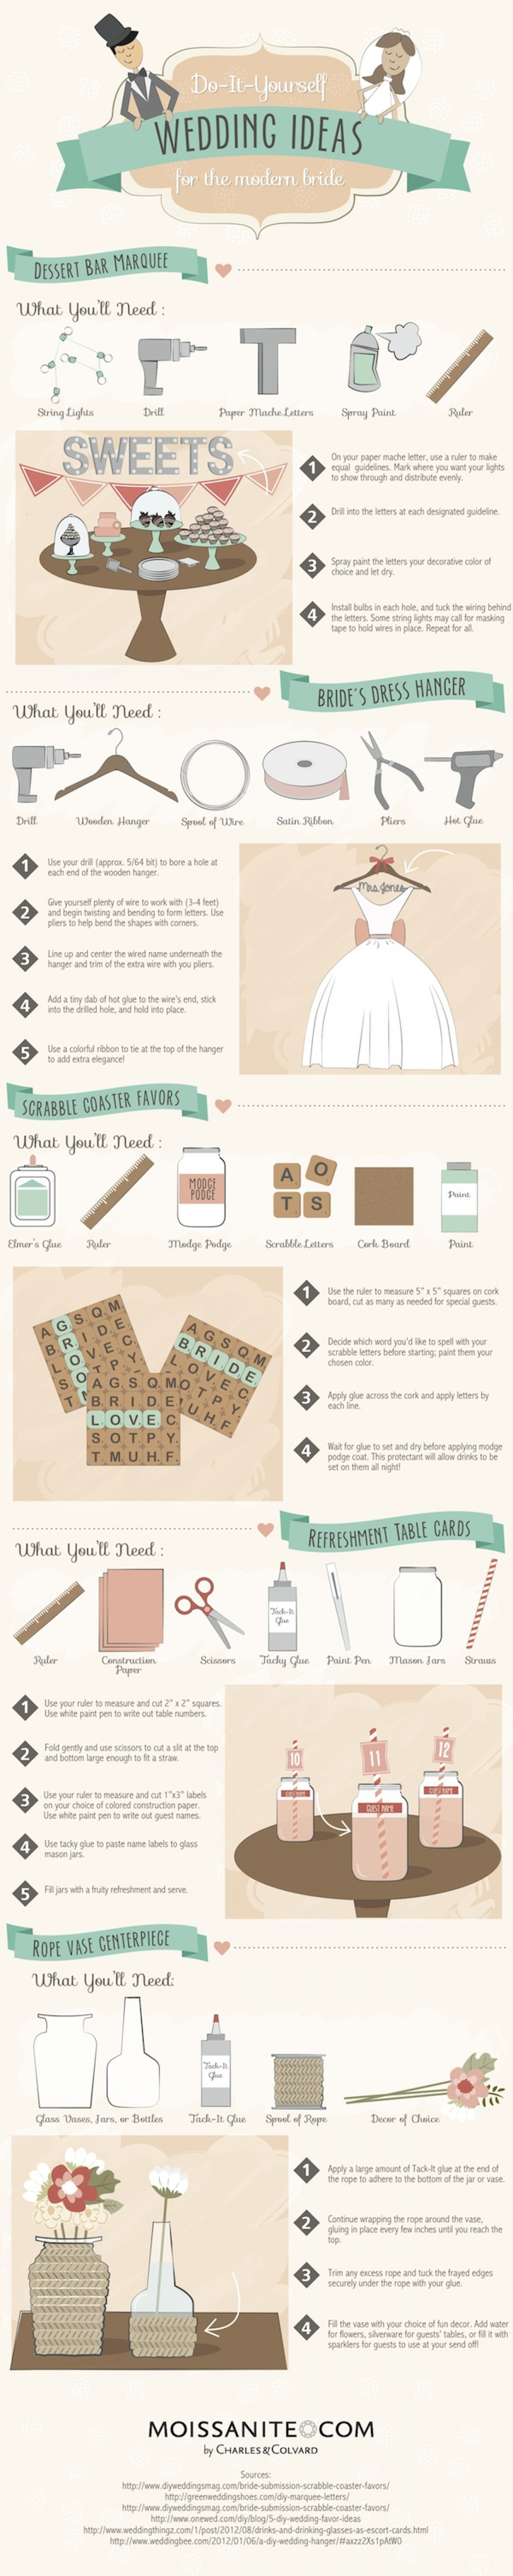 D.I.Y Wedding Ideas for the Modern Bride Infographic